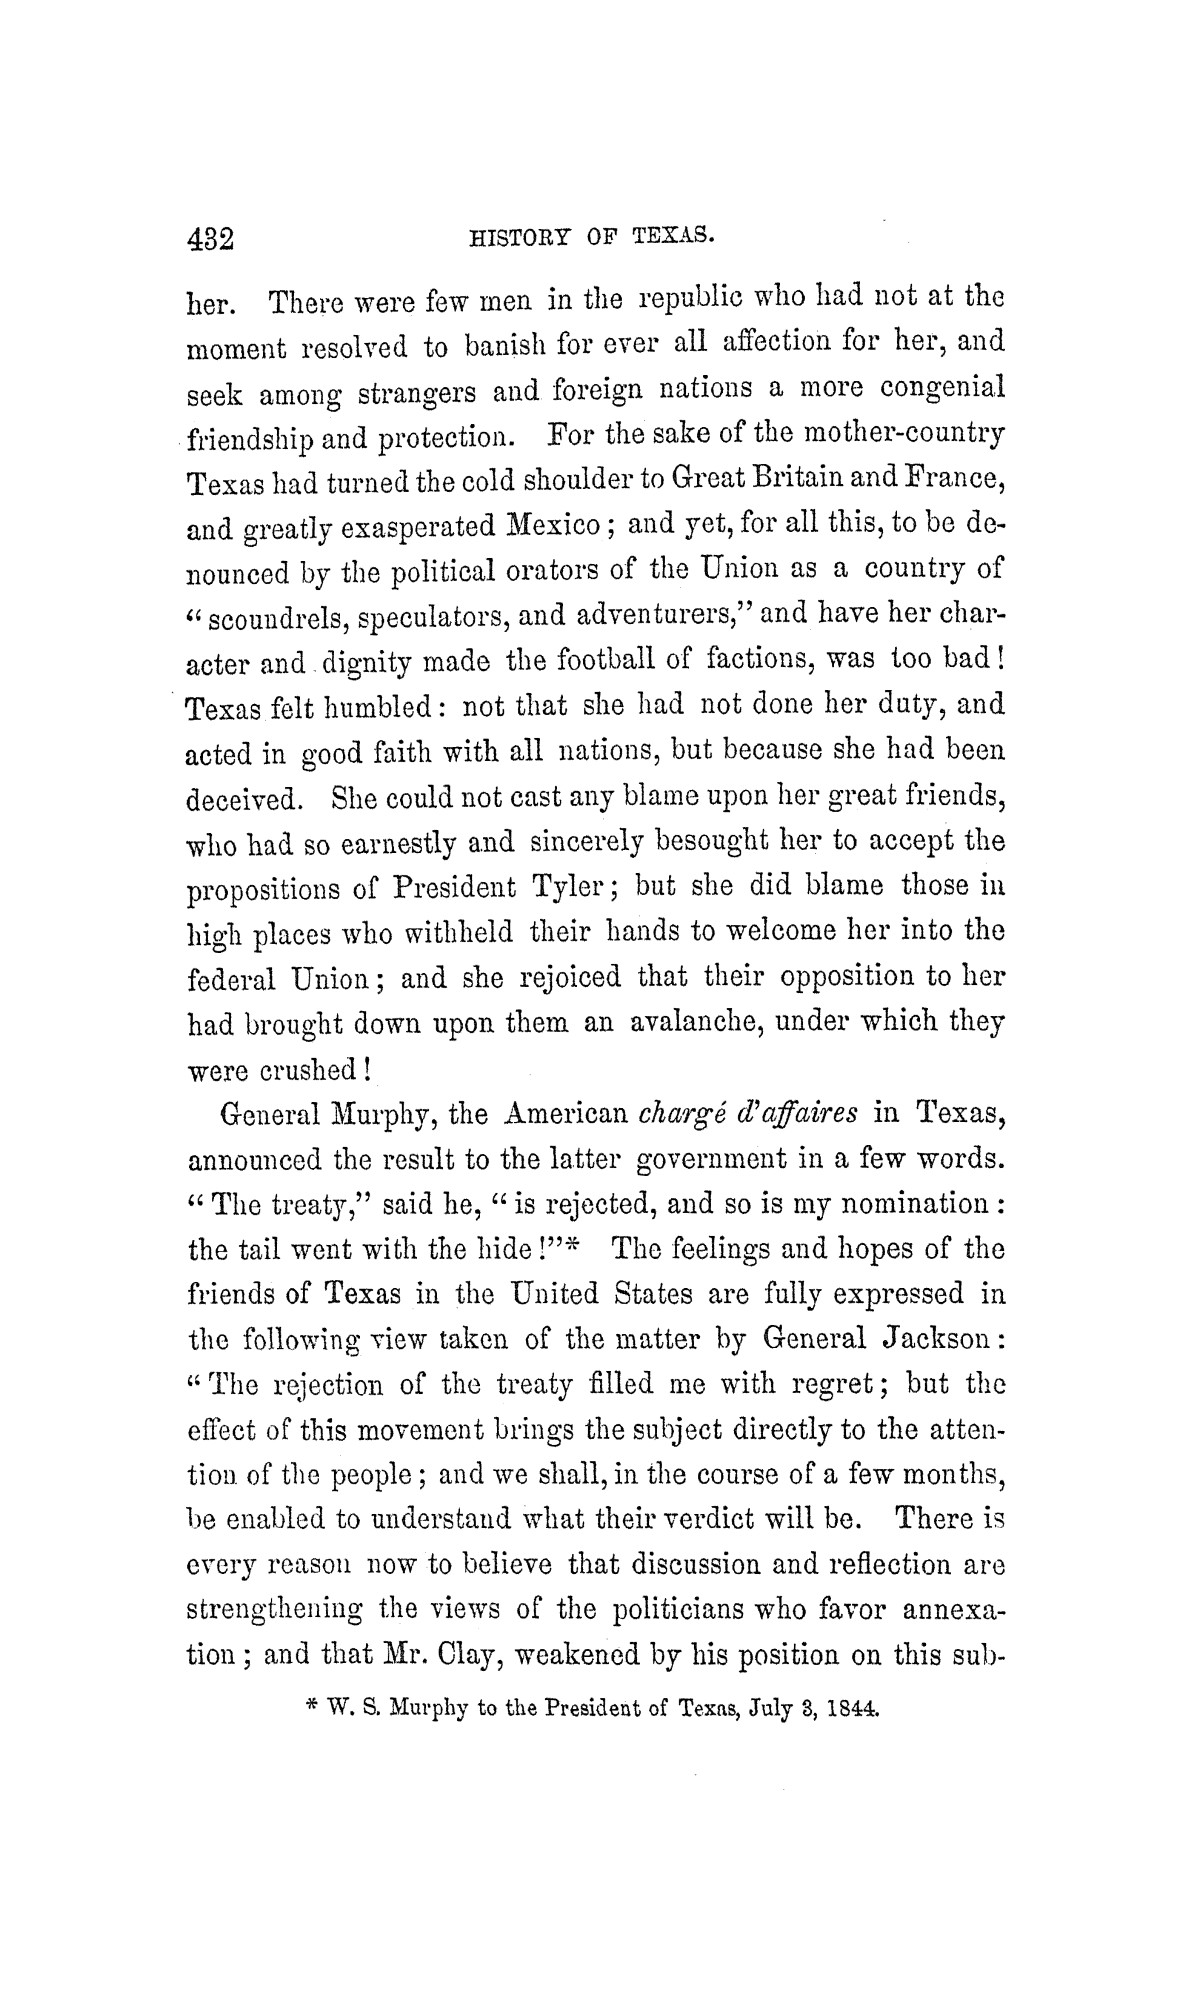 History of Texas: From Its First Settlement in 1685 to Its Annexation to the United States in 1846, Volume 2                                                                                                      [Sequence #]: 440 of 584